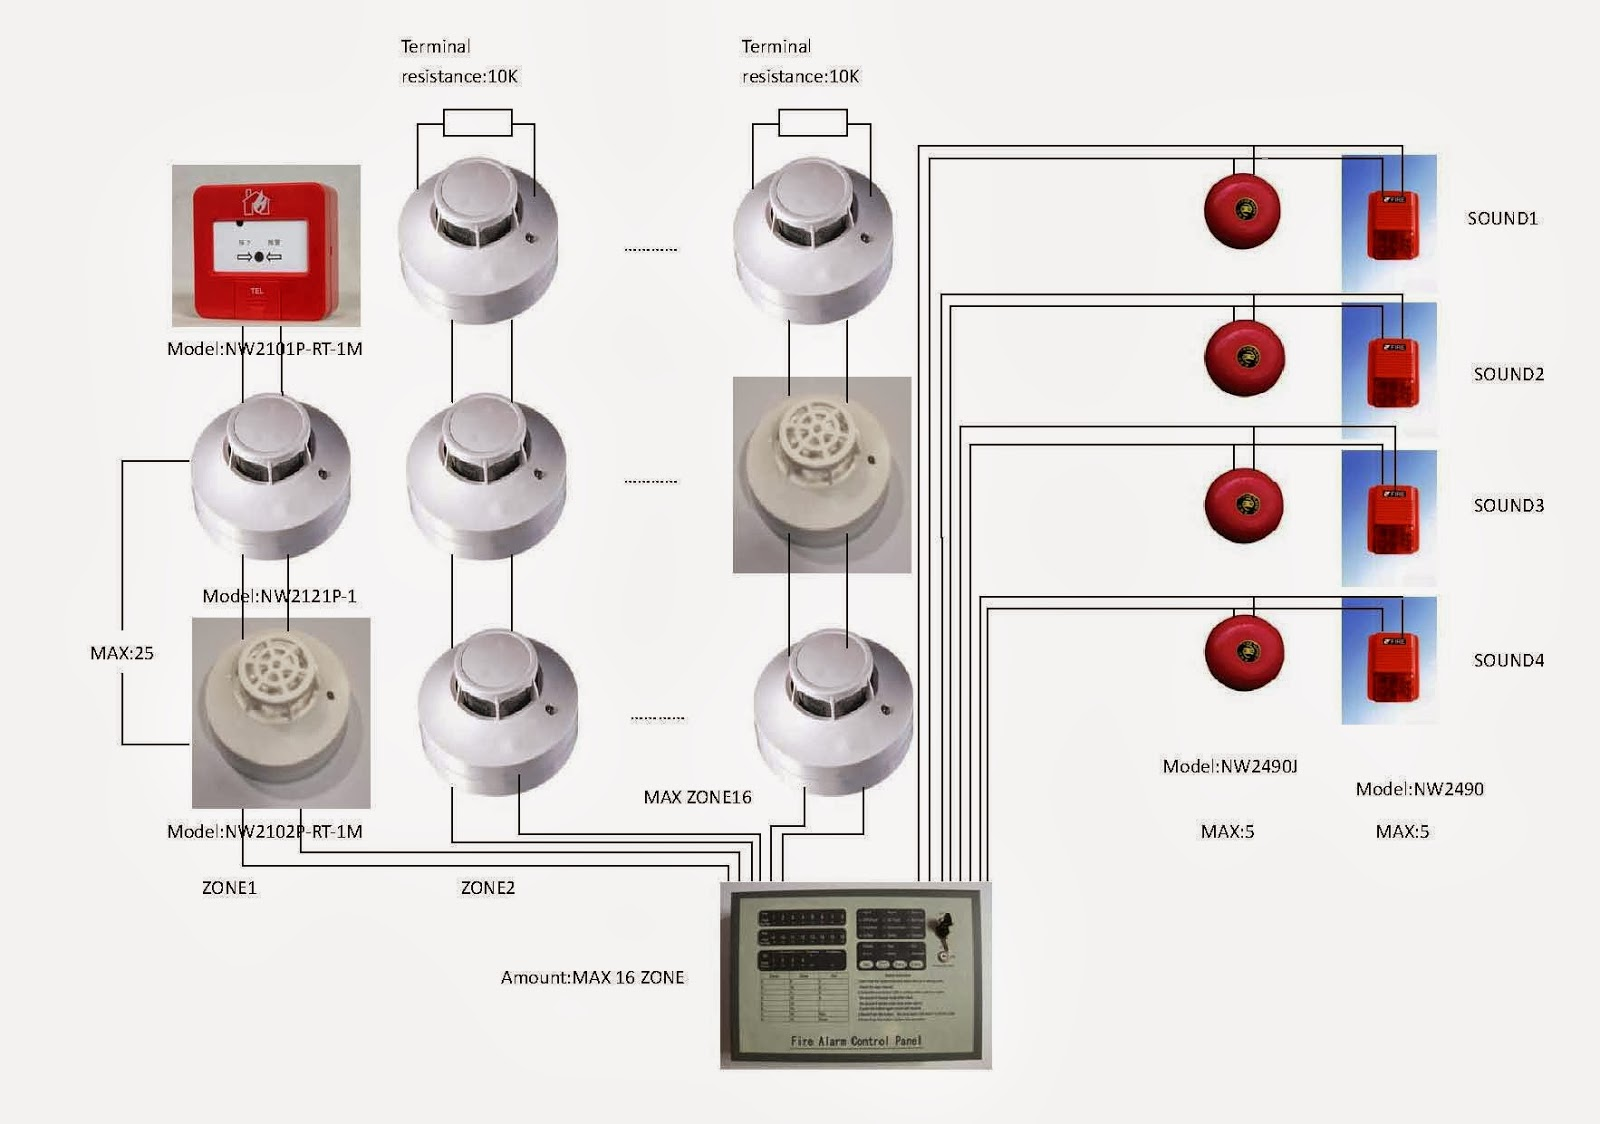 simplex duct detector wiring diagram home electric fleischwolf fire alarm get free image about